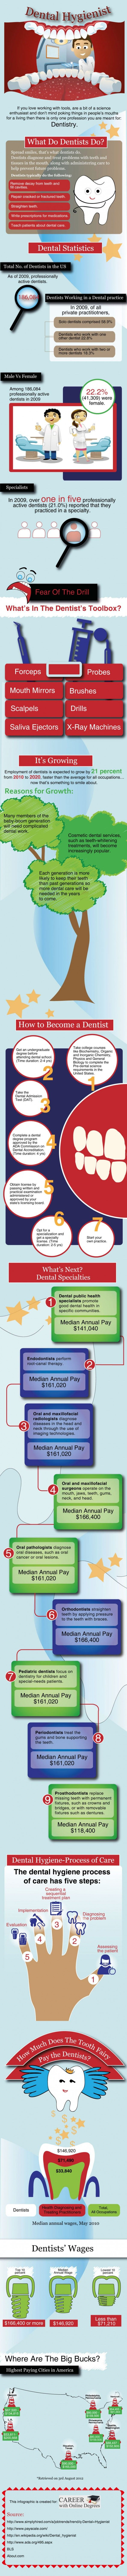 Thinking about being a dental hygienist? This infographic breaks up the salaries, steps and best practice.